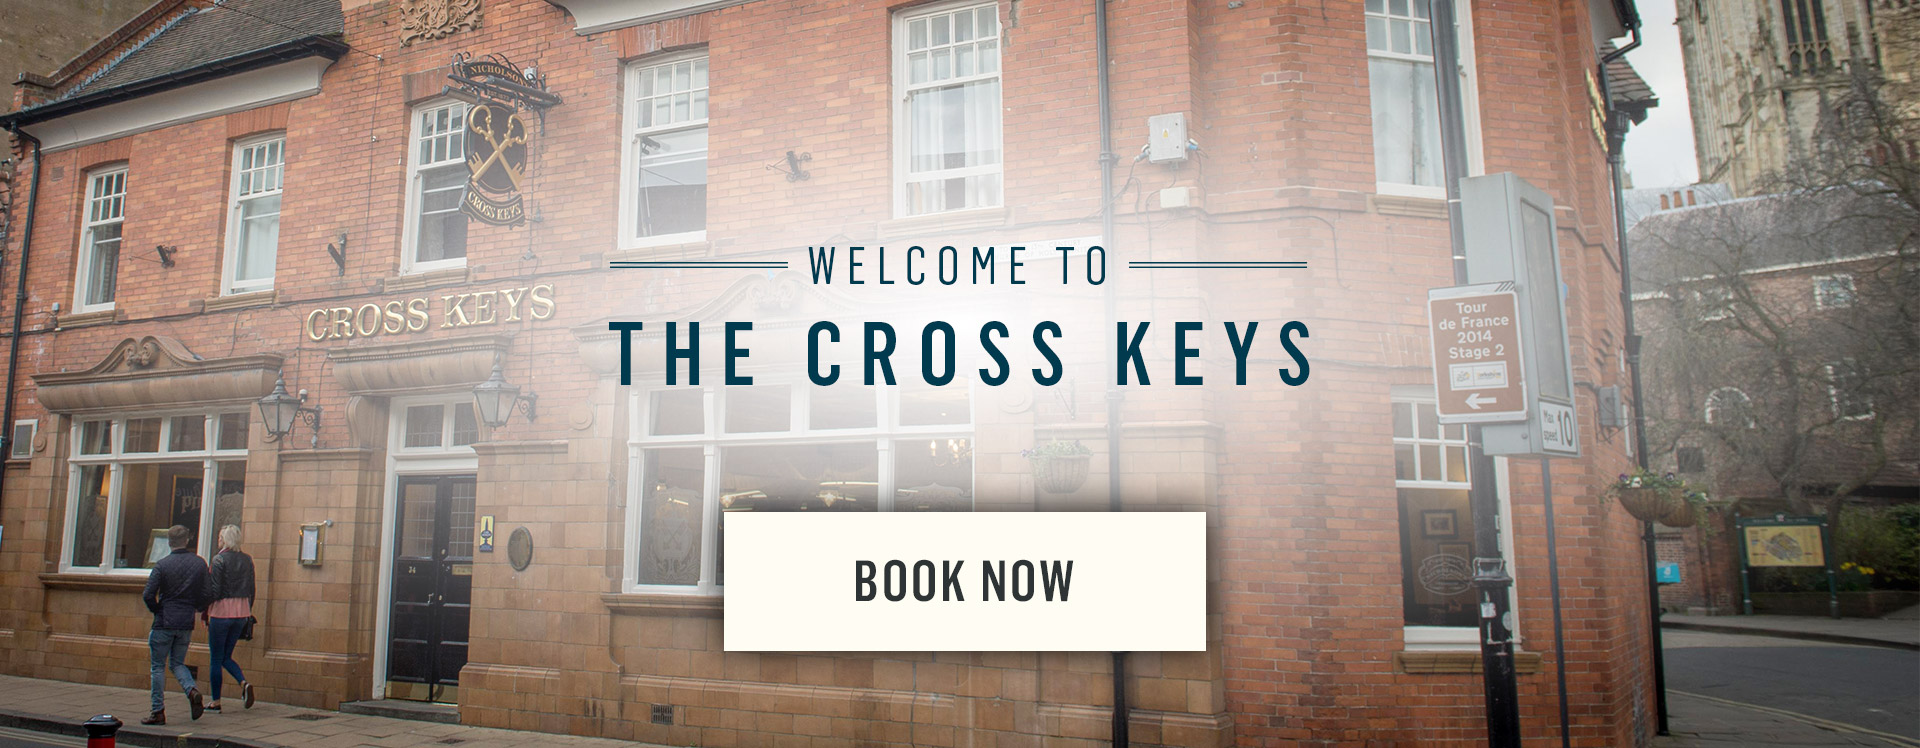 Welcome to The Cross Keys - Book Now